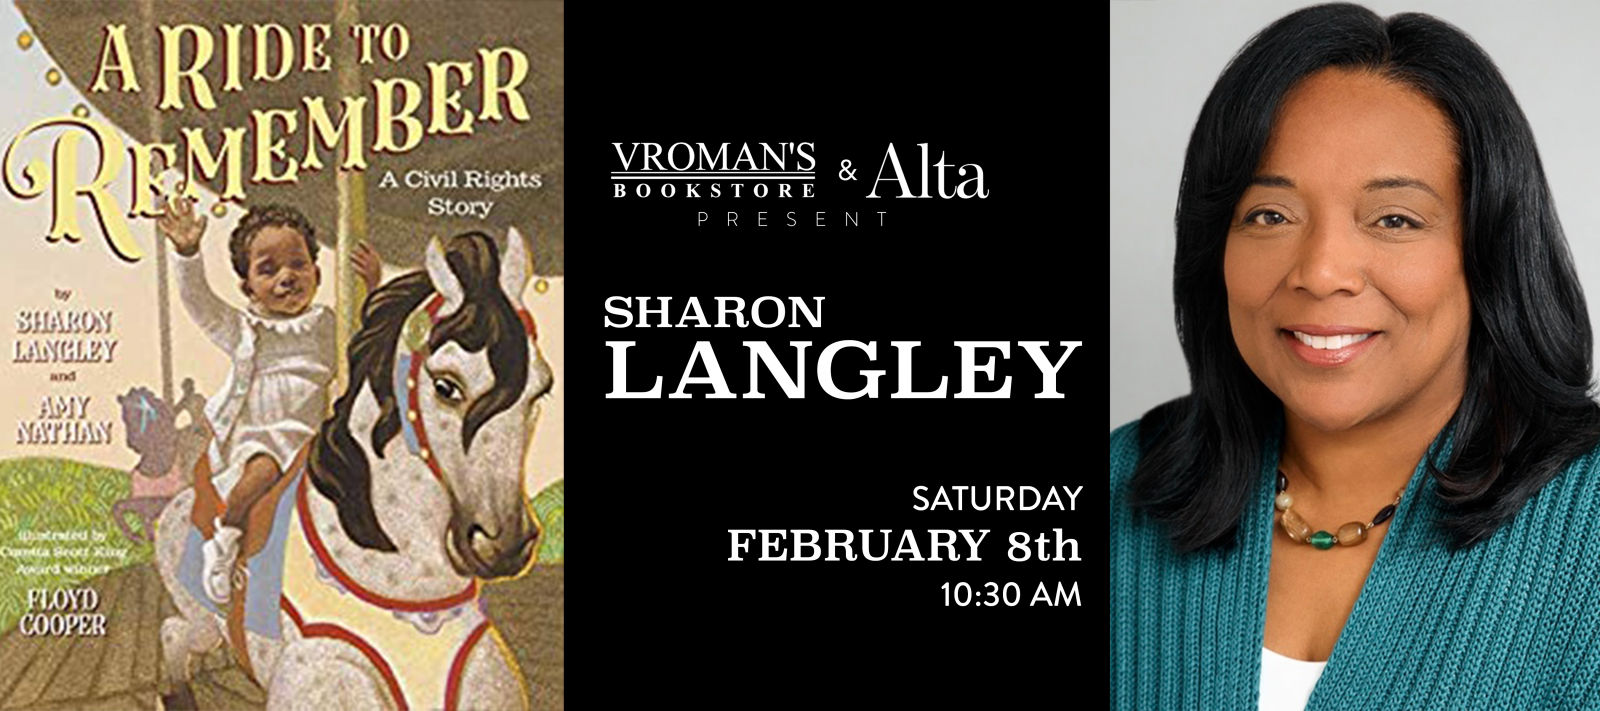 Sharon Langley book signing on Saturday, February 8, at 10:30am